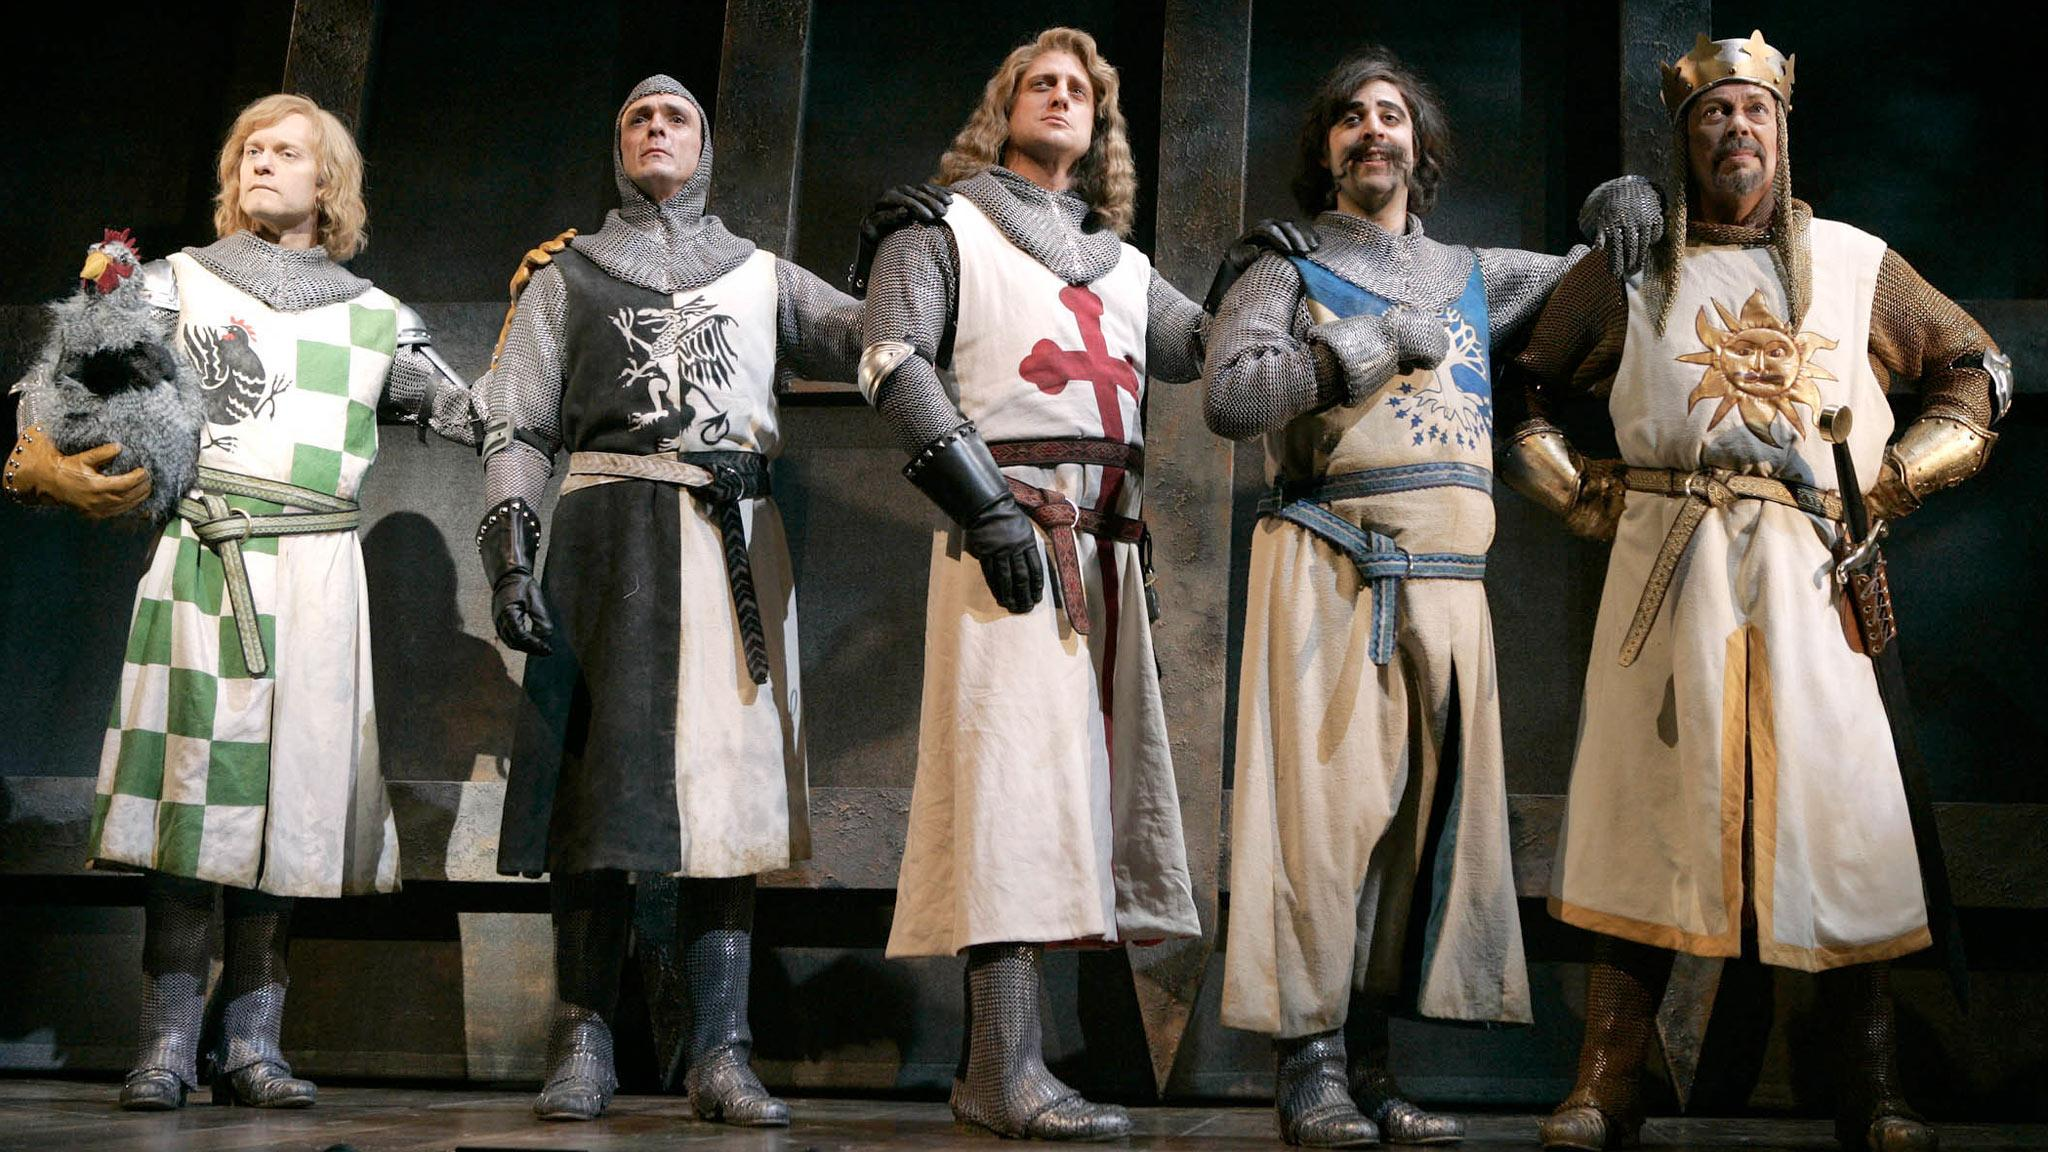 Monty Python and the Holy Grail' producer wins 'Spamalot' trial